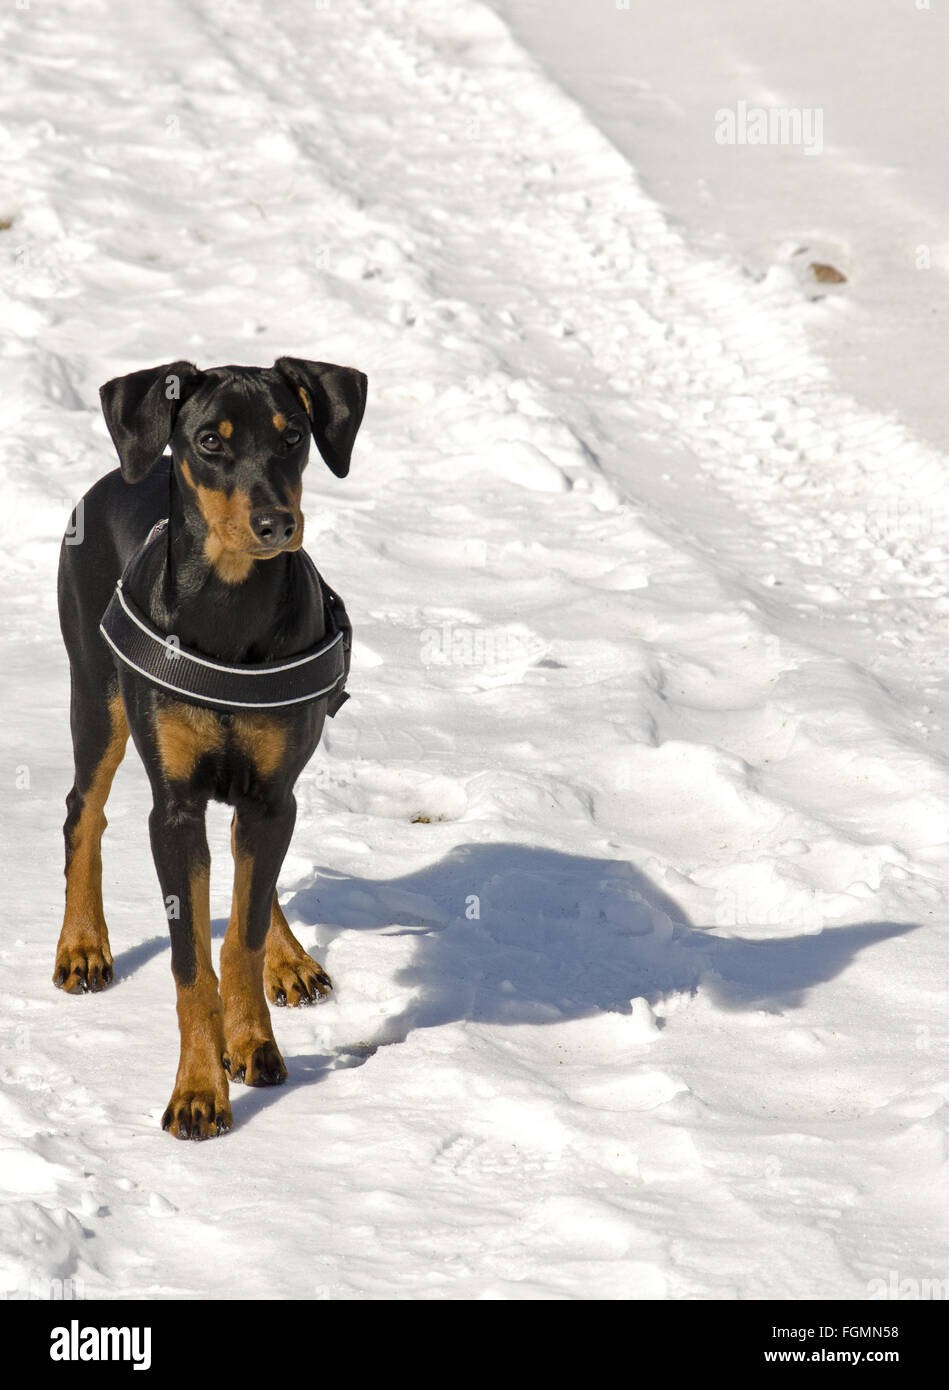 German Pinscher in the snow. - Stock Image